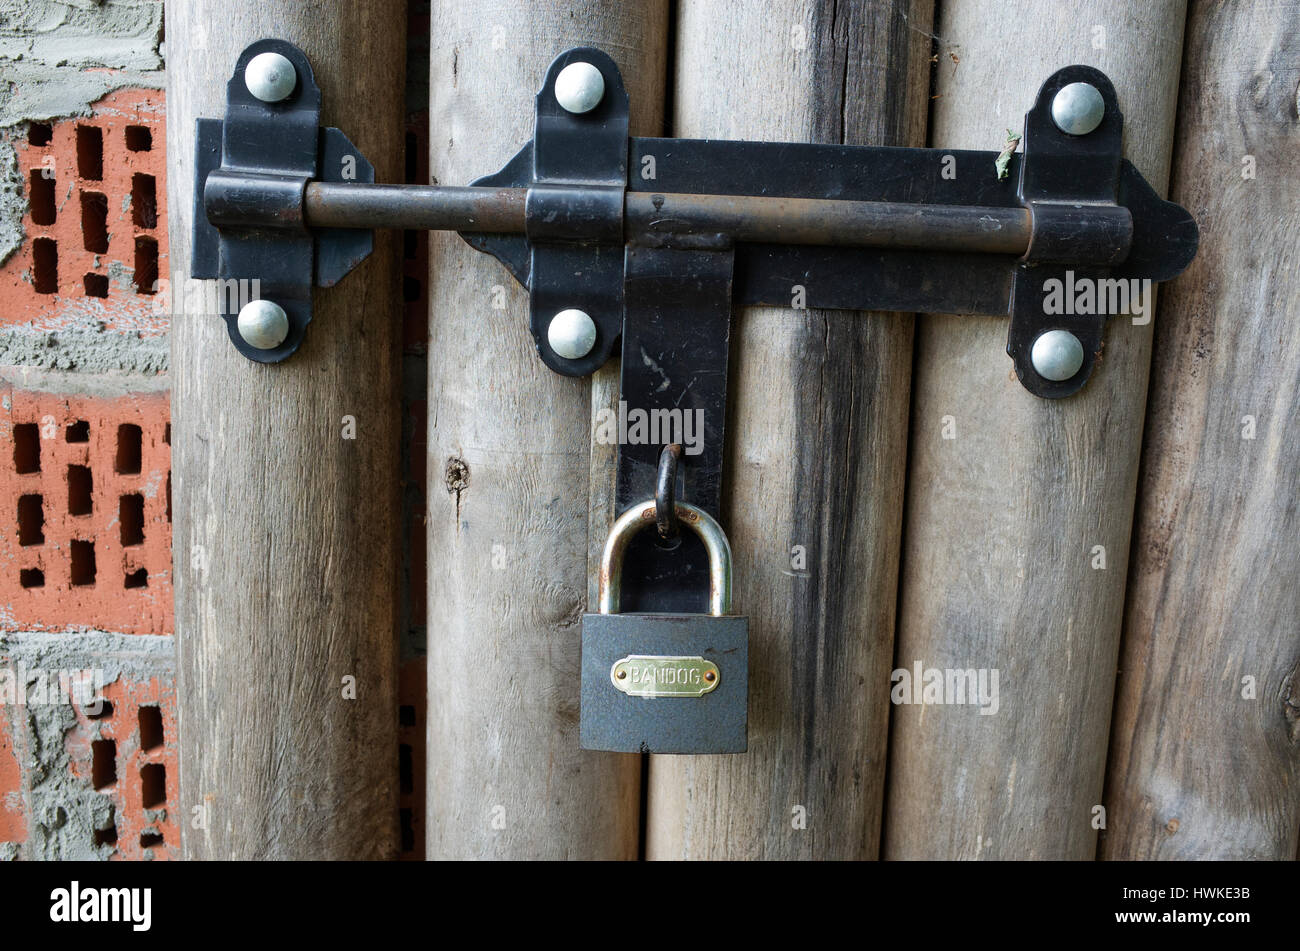 bolt padlock stockfotos bolt padlock bilder alamy. Black Bedroom Furniture Sets. Home Design Ideas